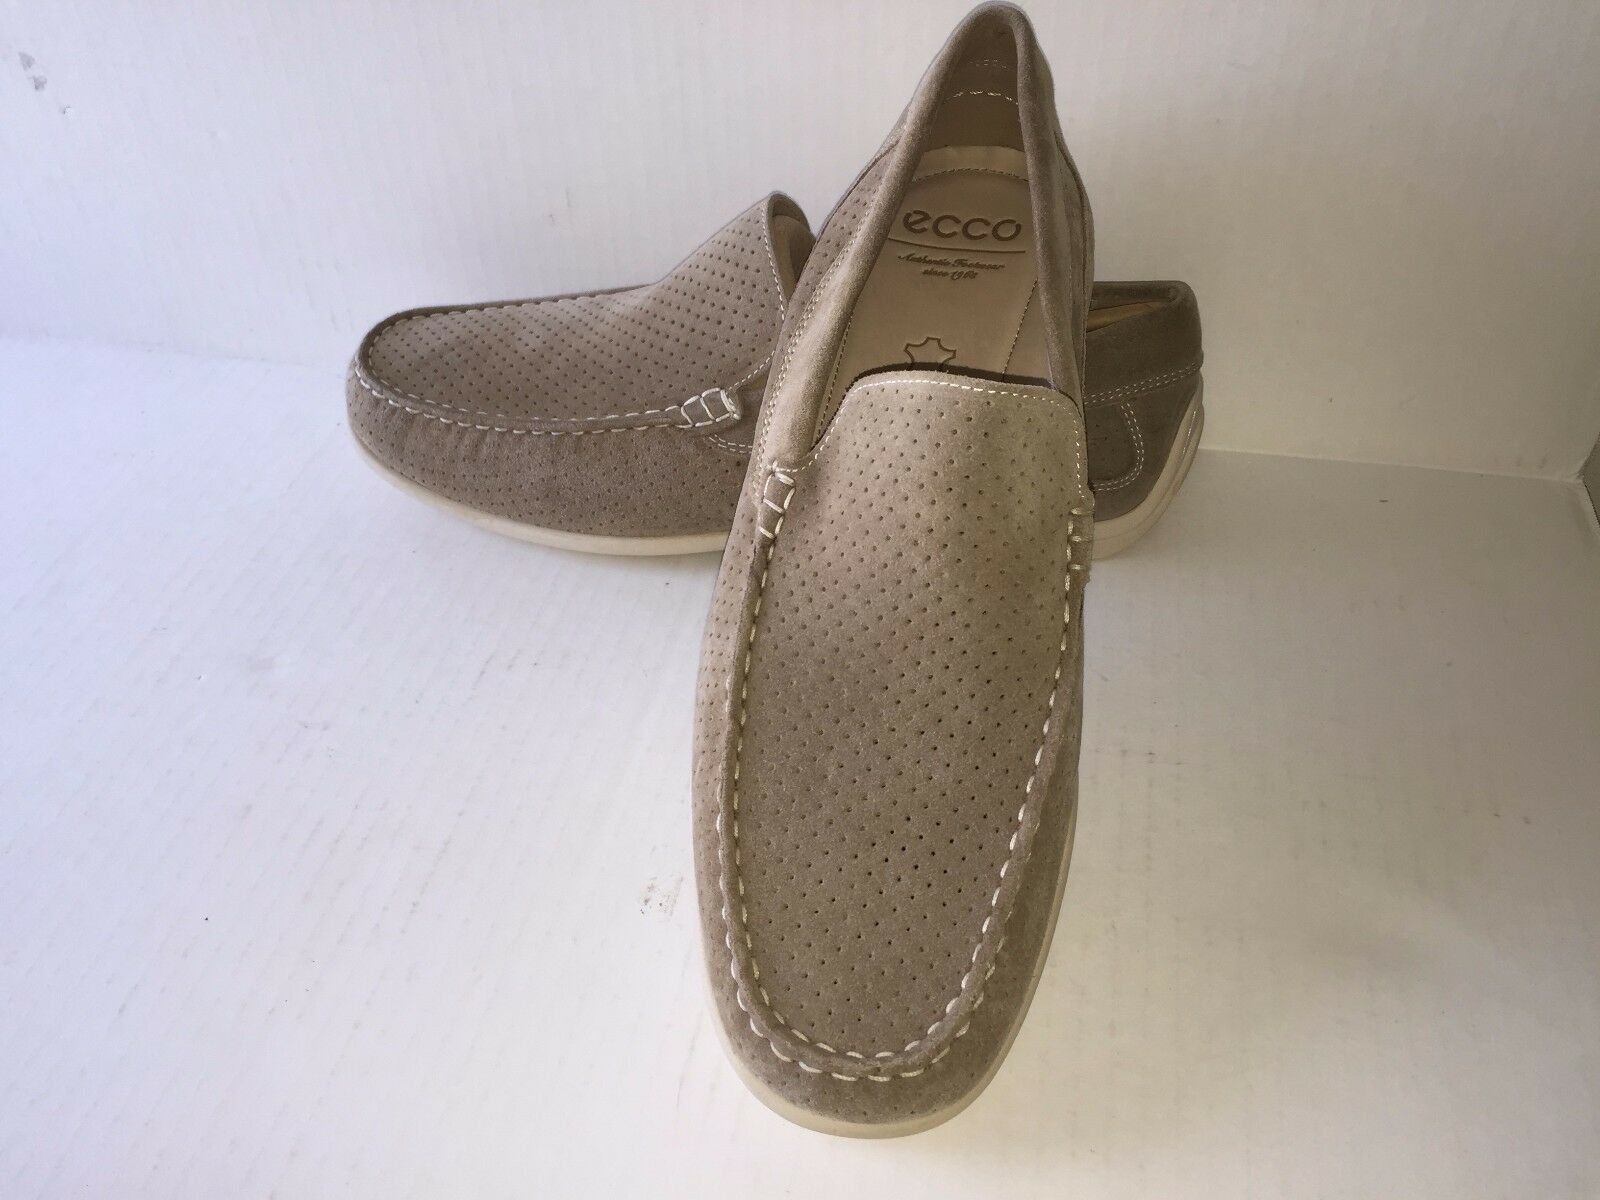 ECCO CLASSIC MOC, Beige Suede loafer, Mens, Quality, 57103415631, NEW in BOX